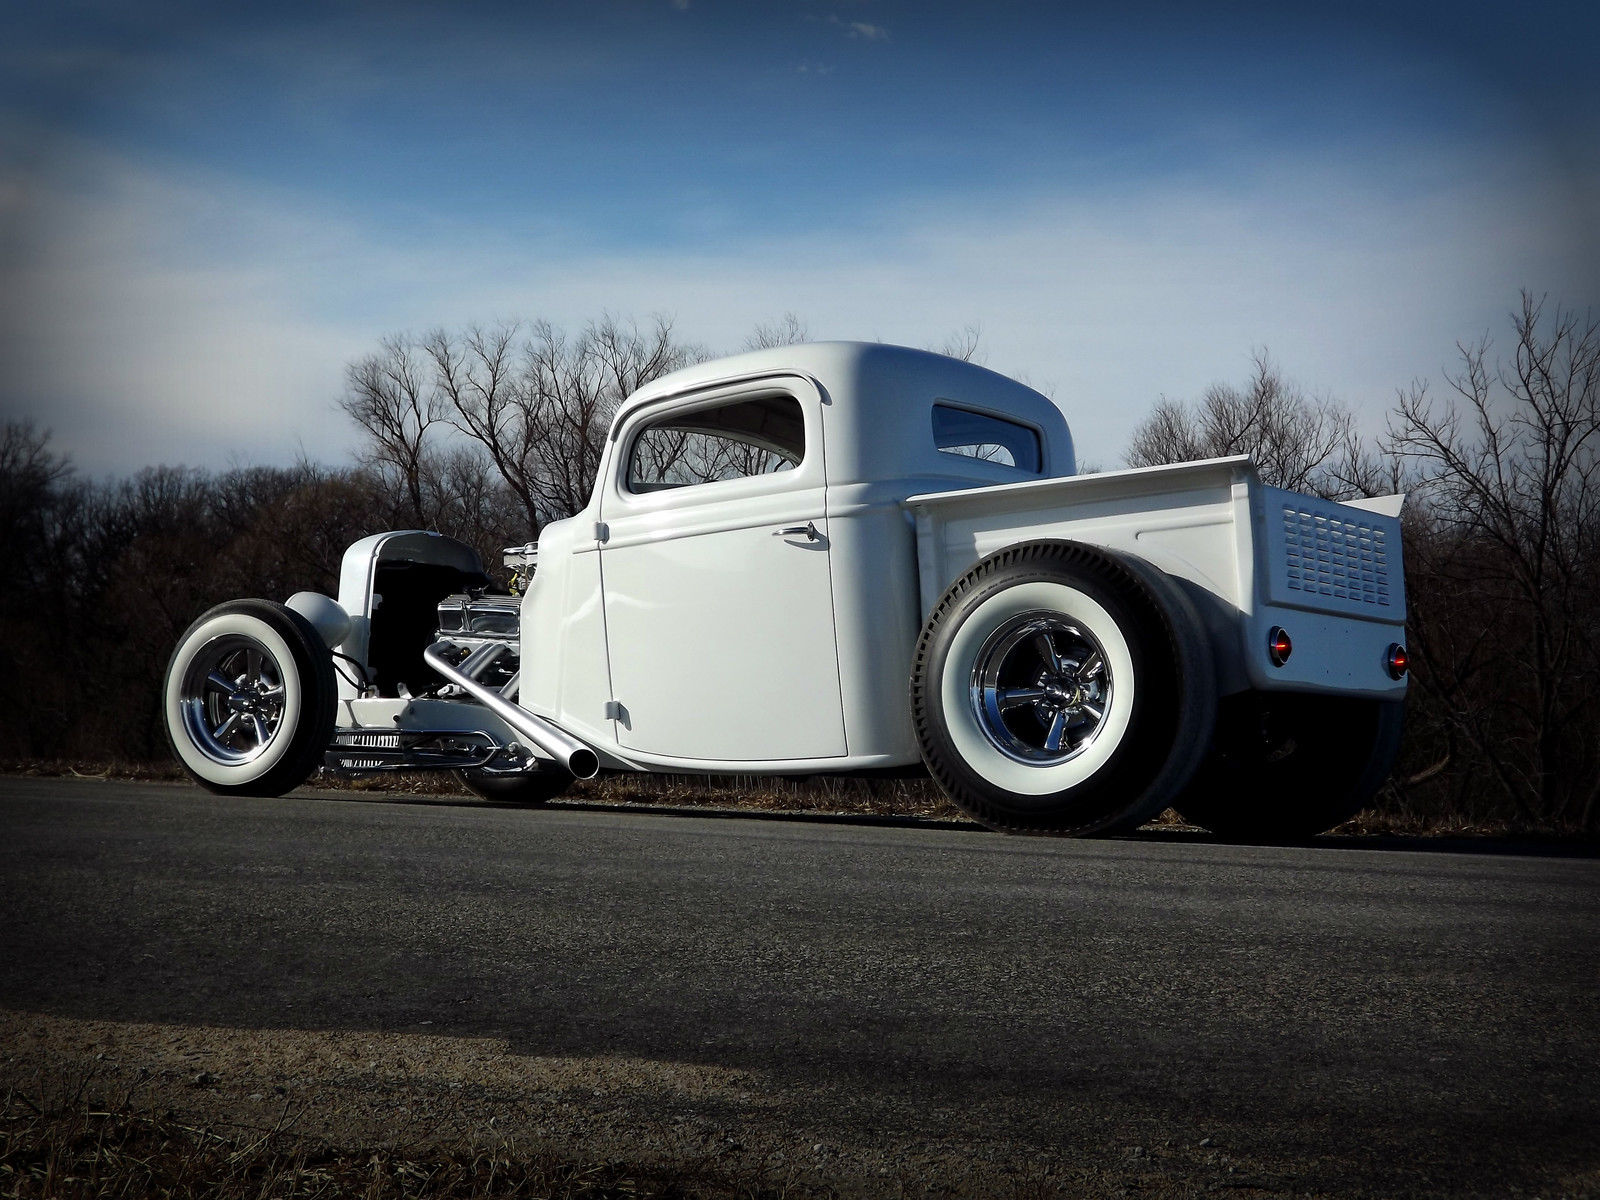 1936 ford pickup no reserve hot rod custom traditional raked chopped street rat